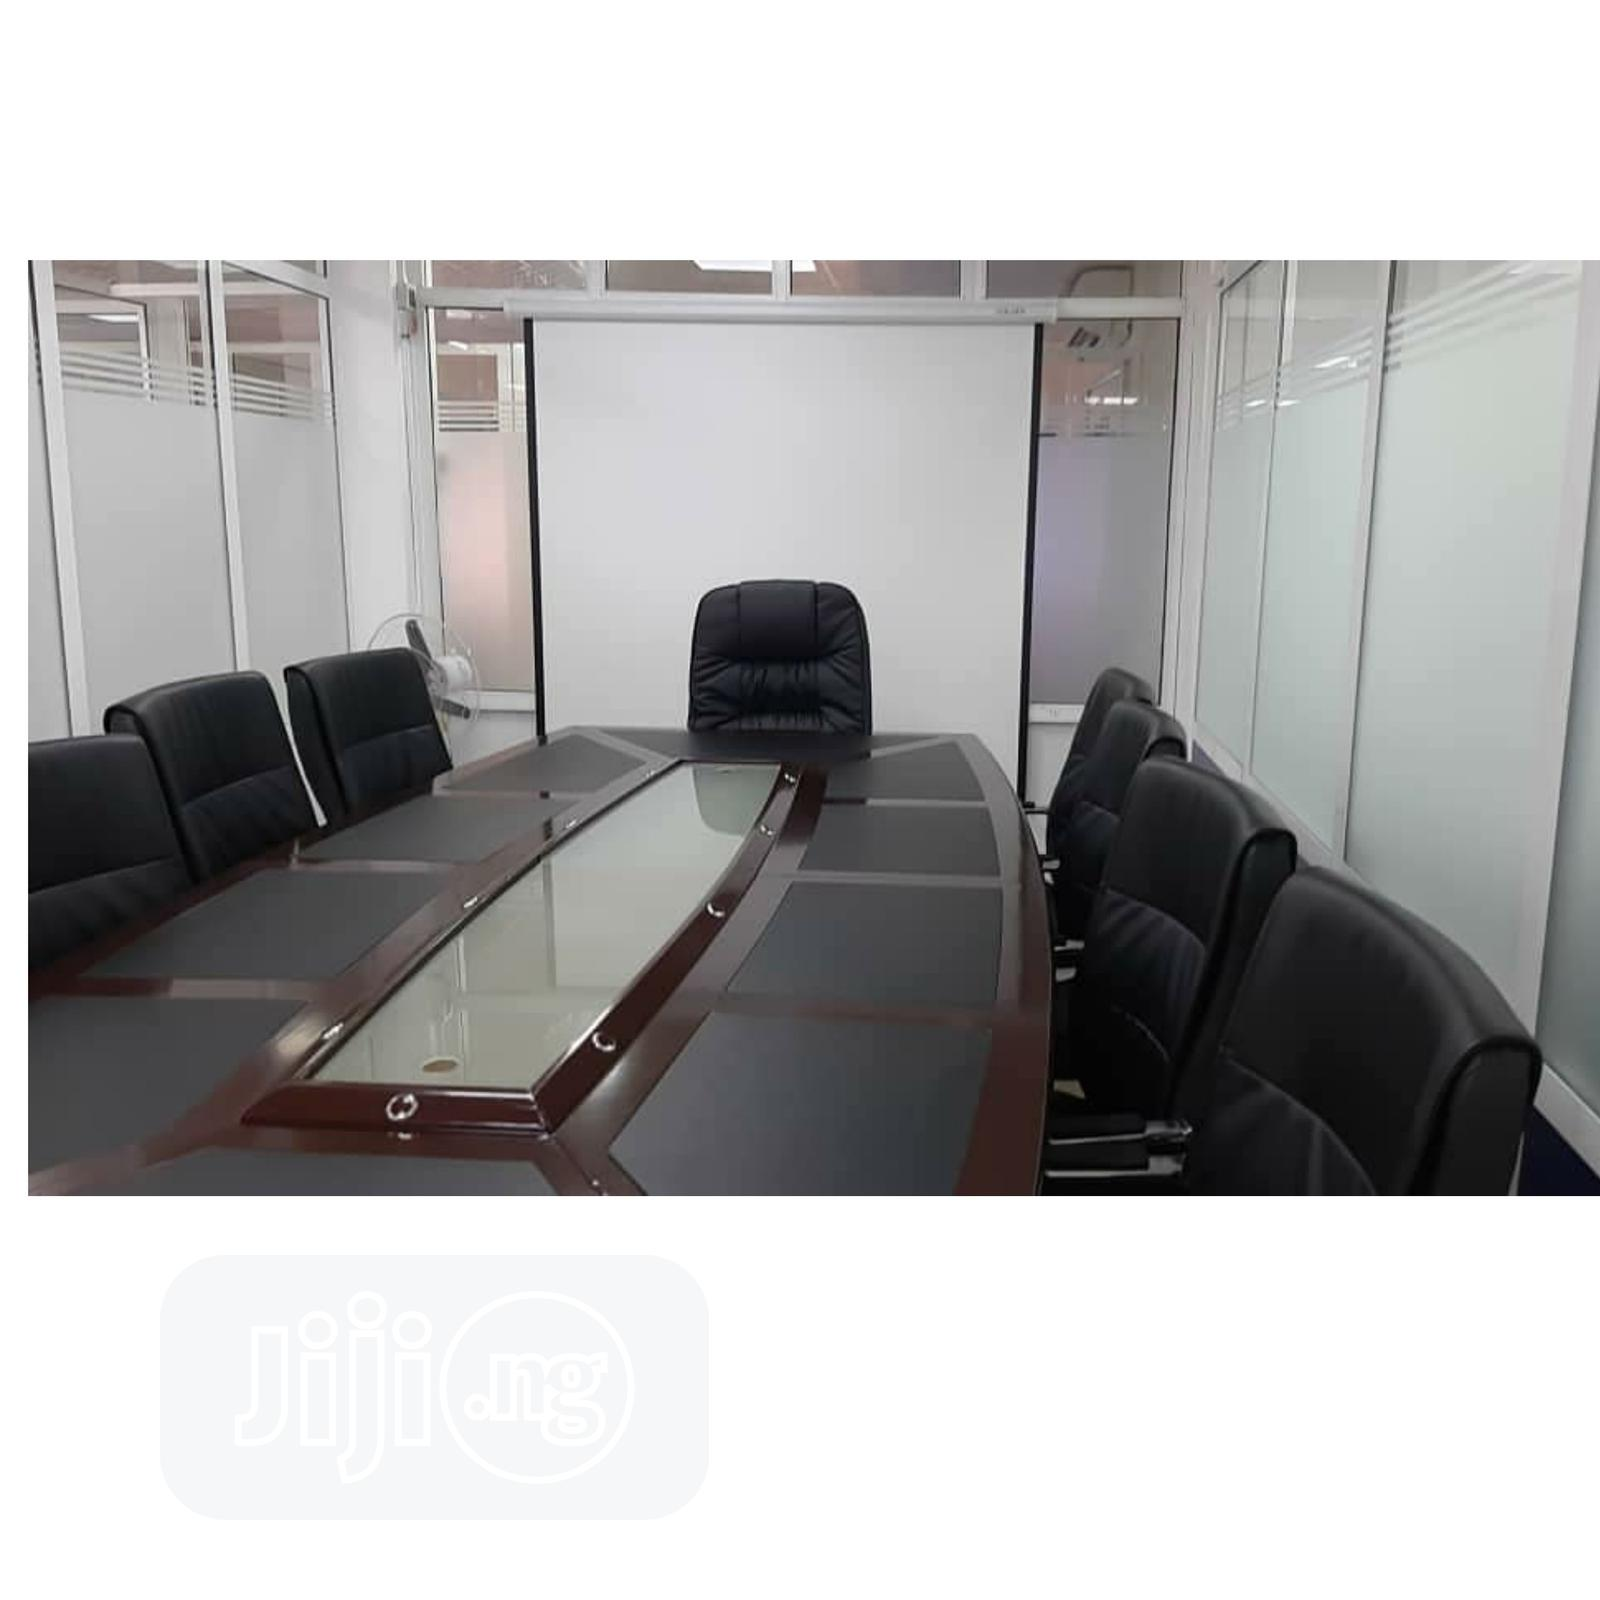 Conference Room For Rent | Event centres, Venues and Workstations for sale in Lekki, Lagos State, Nigeria